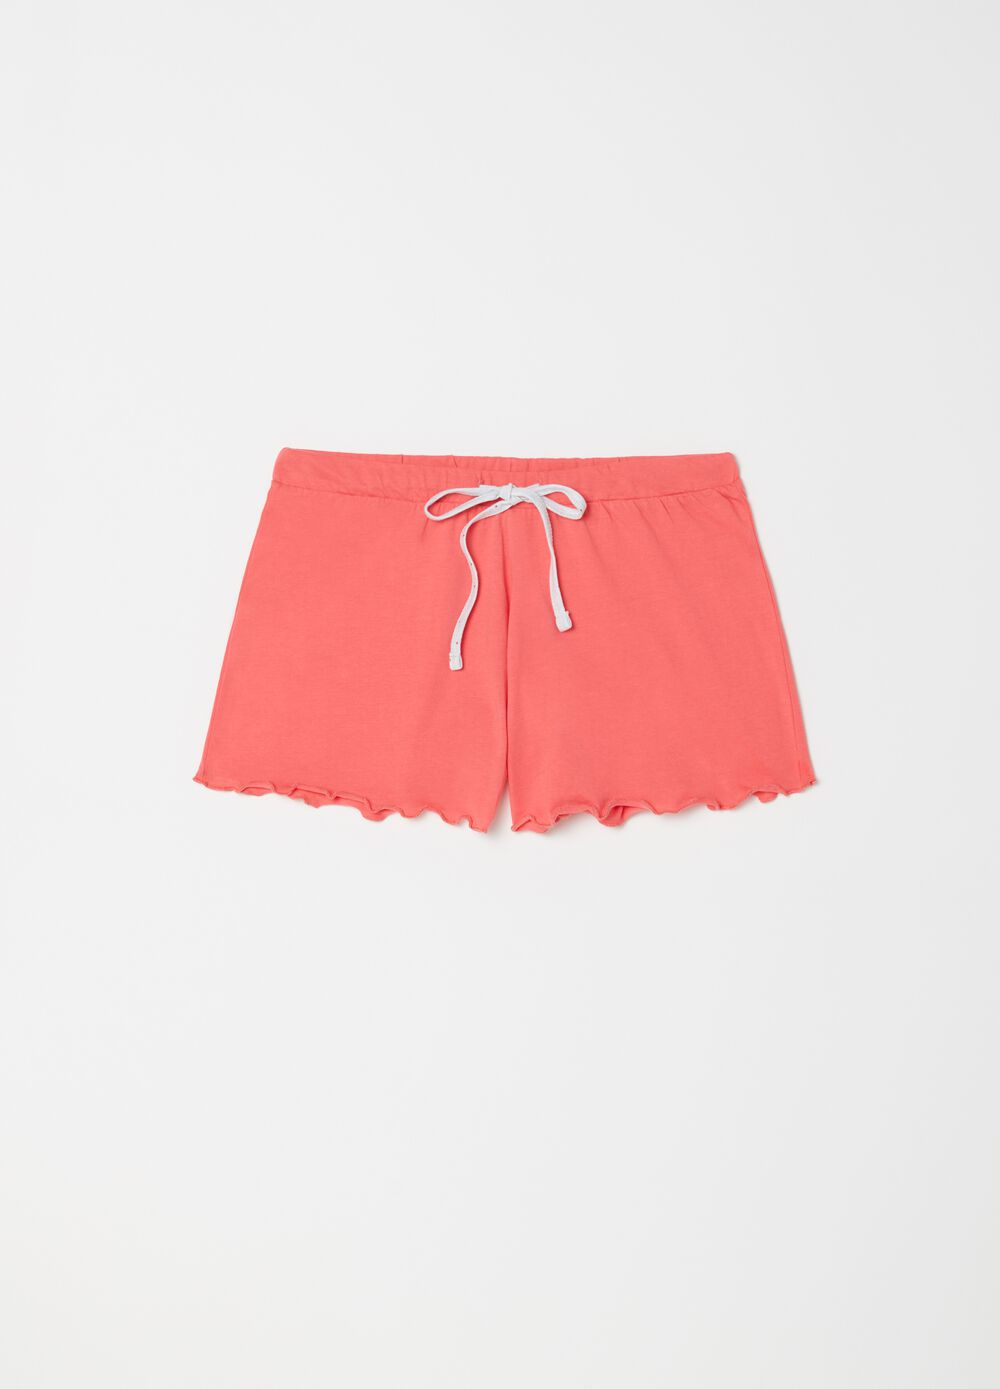 Shorts pigiama con coulisse a contrasto